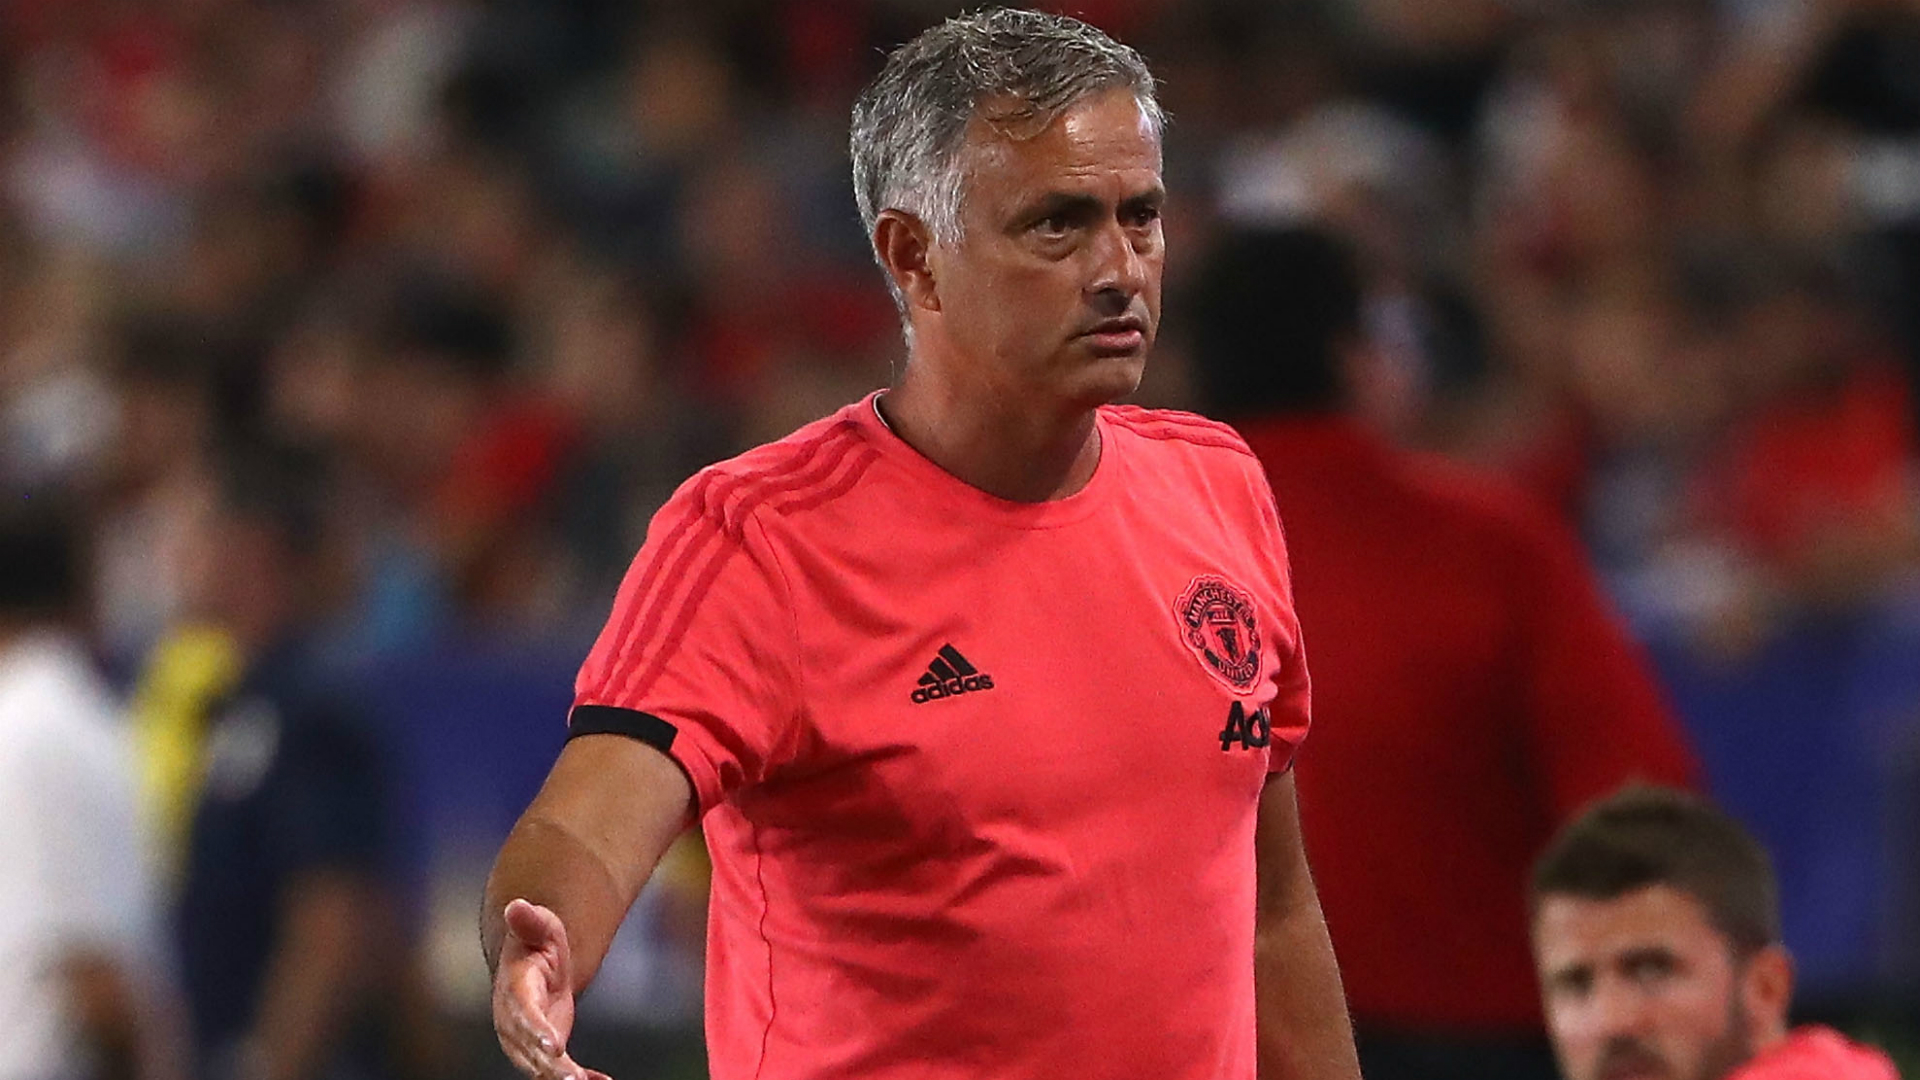 Man Utd players 'censoring' themselves to avoid angry Mourinho